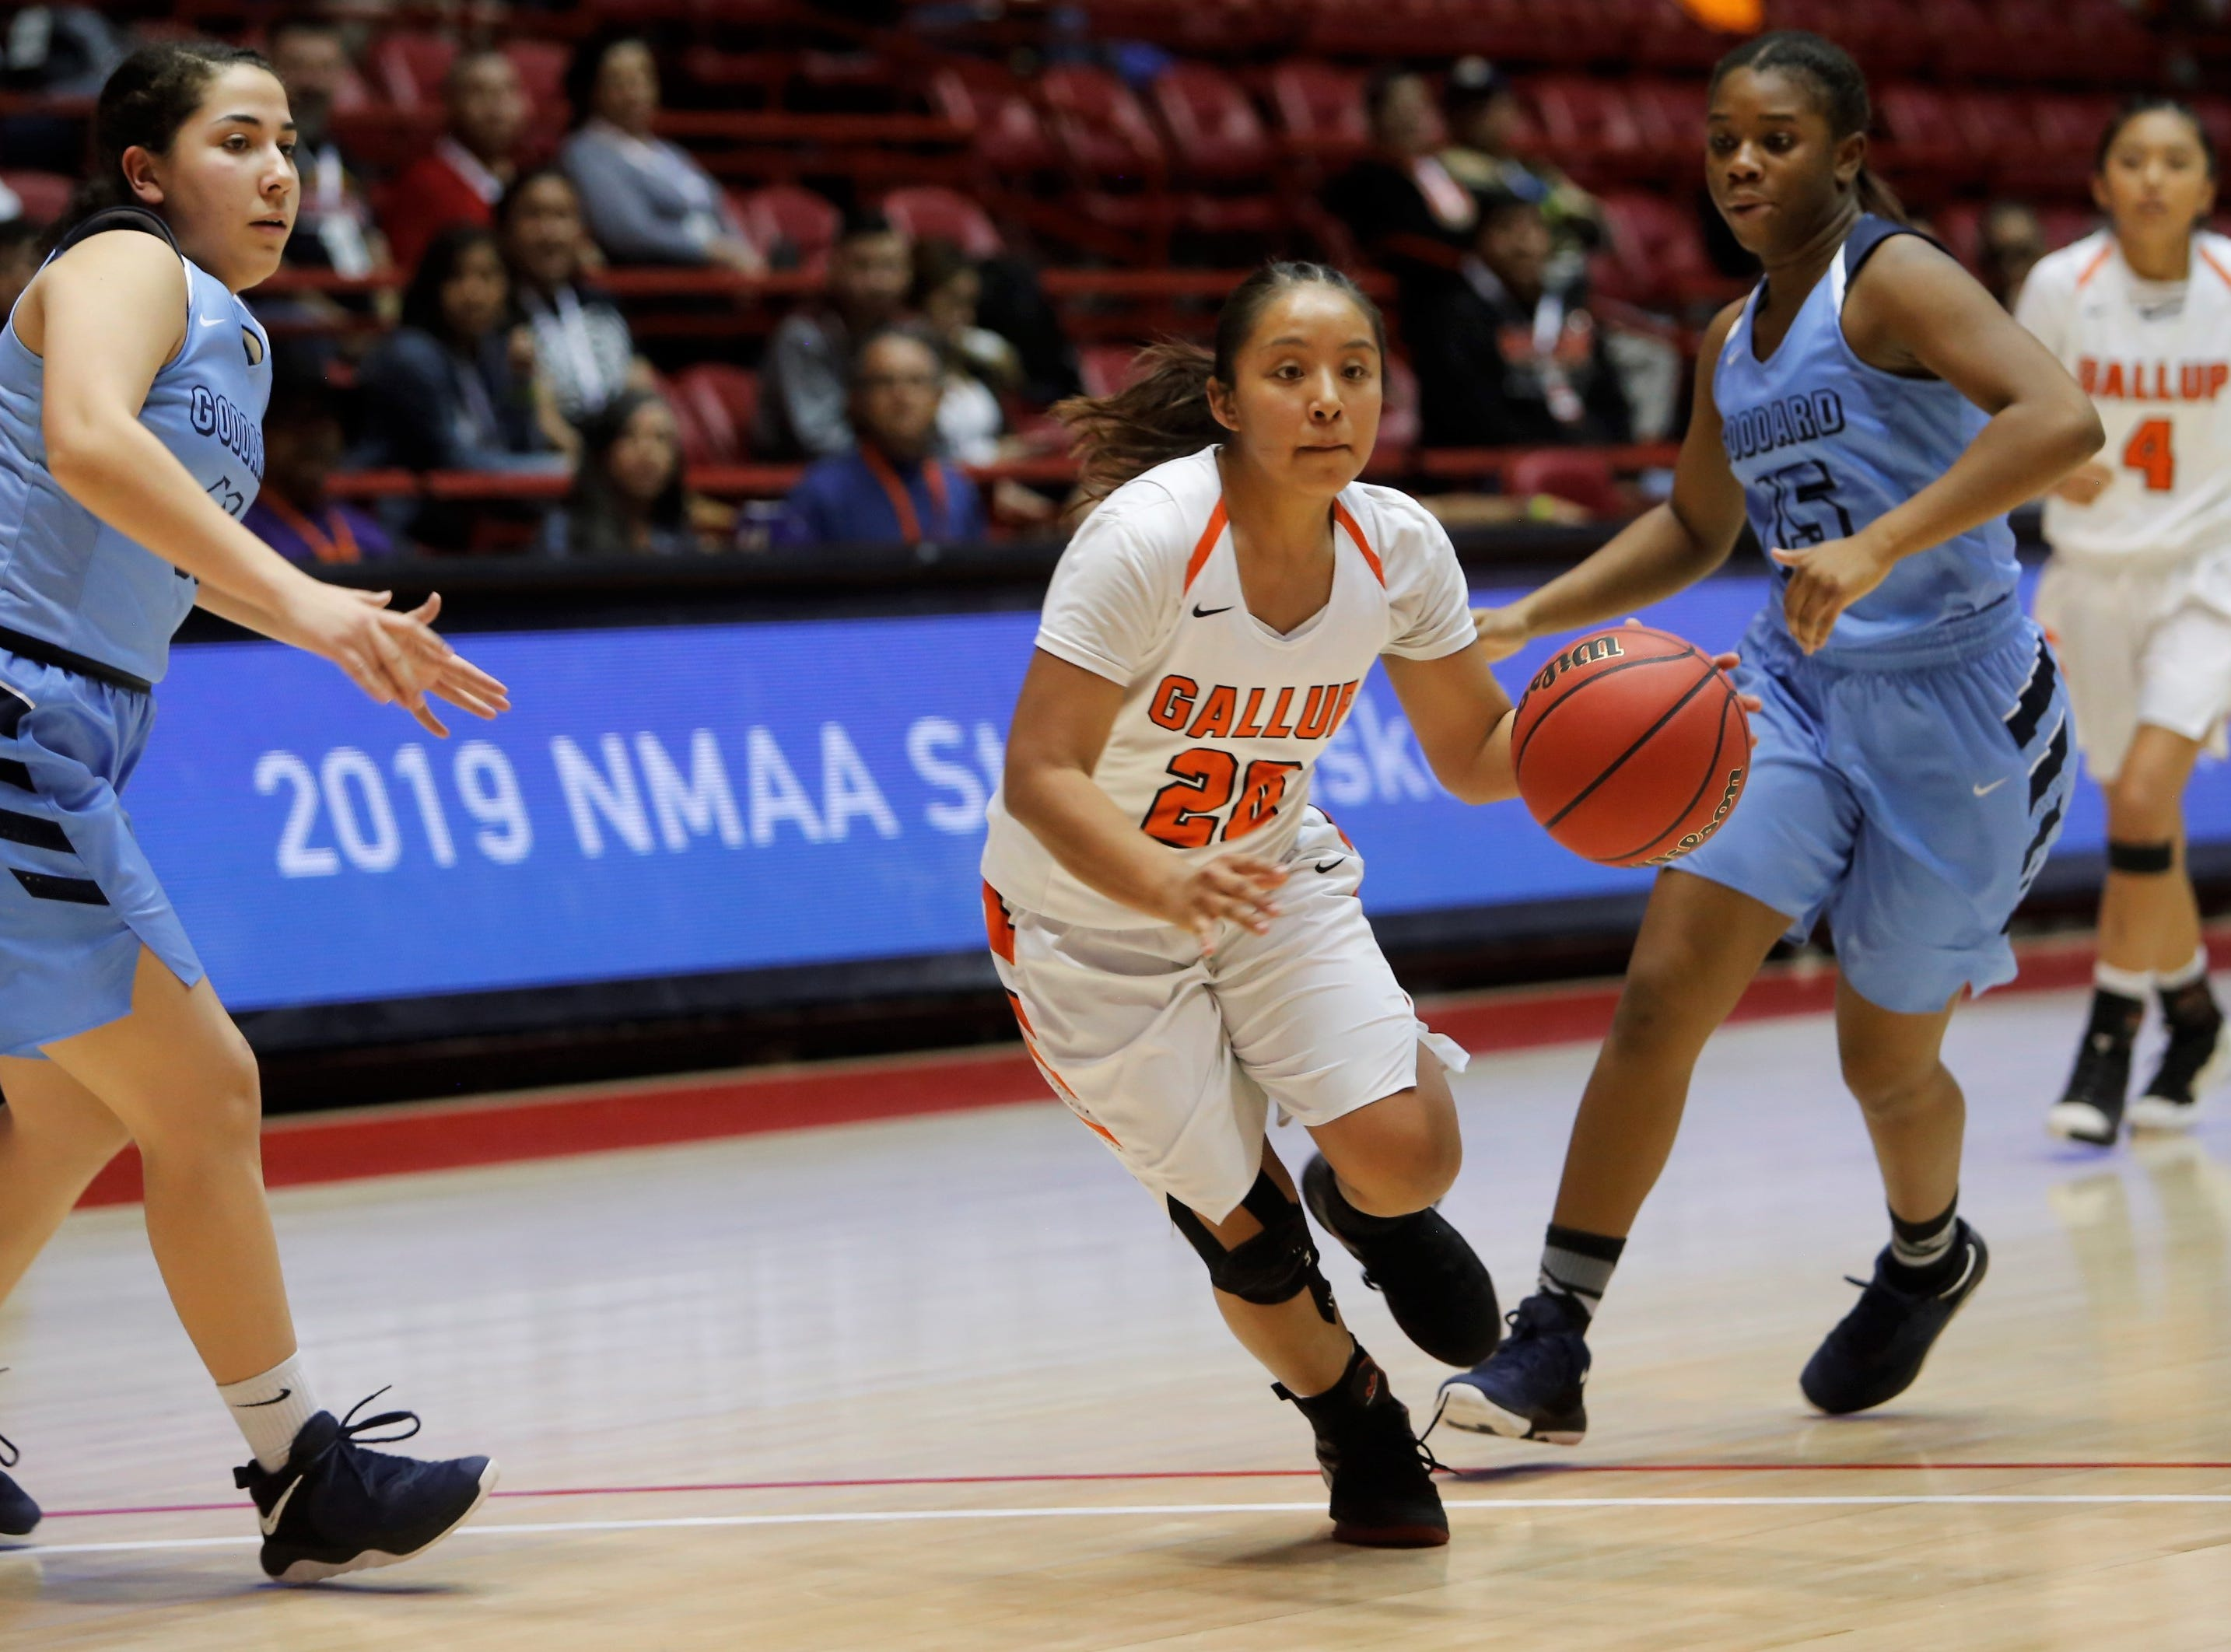 Gallup's Kamryn Yazzie drives toward the basket against Goddard during Tuesday's 4A state quarterfinals game at Dreamstyle Arena in Albuquerque.